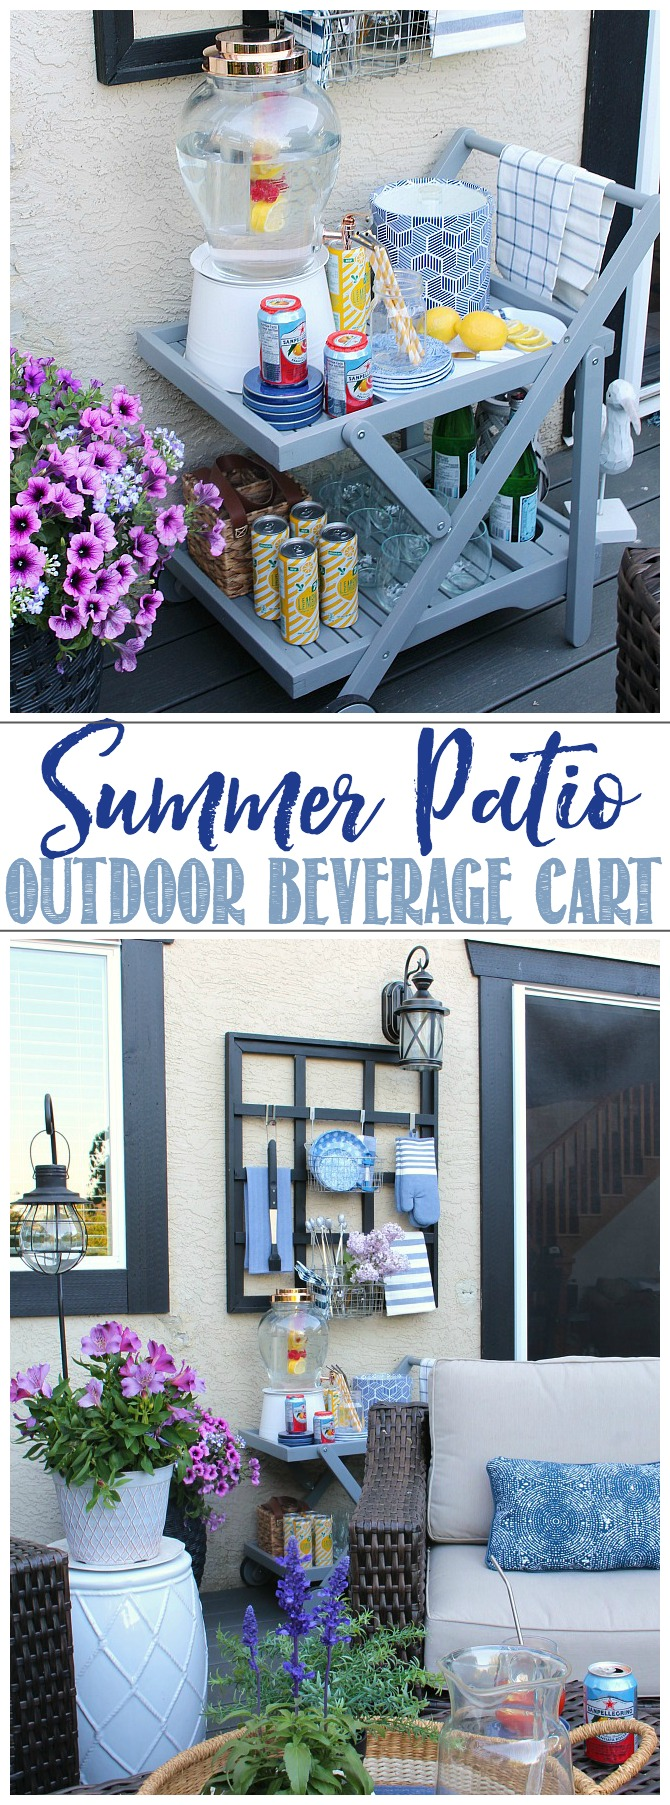 Styled outdoor beverage cart.